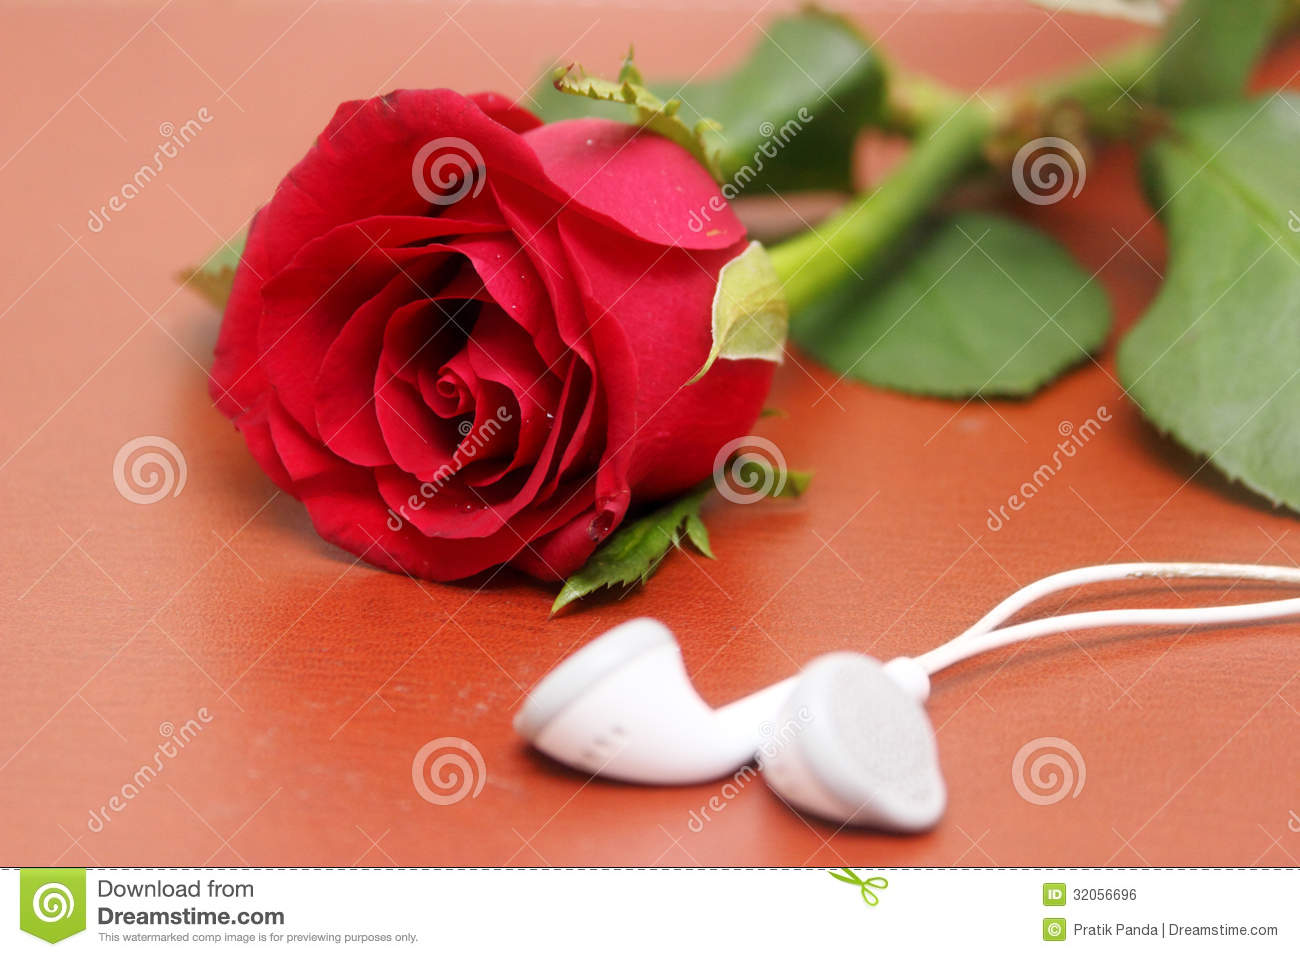 Simple Wallpaper Music Rose - love-rose-romantic-music-concept-pair-earphones-blood-red-detailed-luxurious-leather-texture-image-you-can-use-32056696  Image_61905.jpg